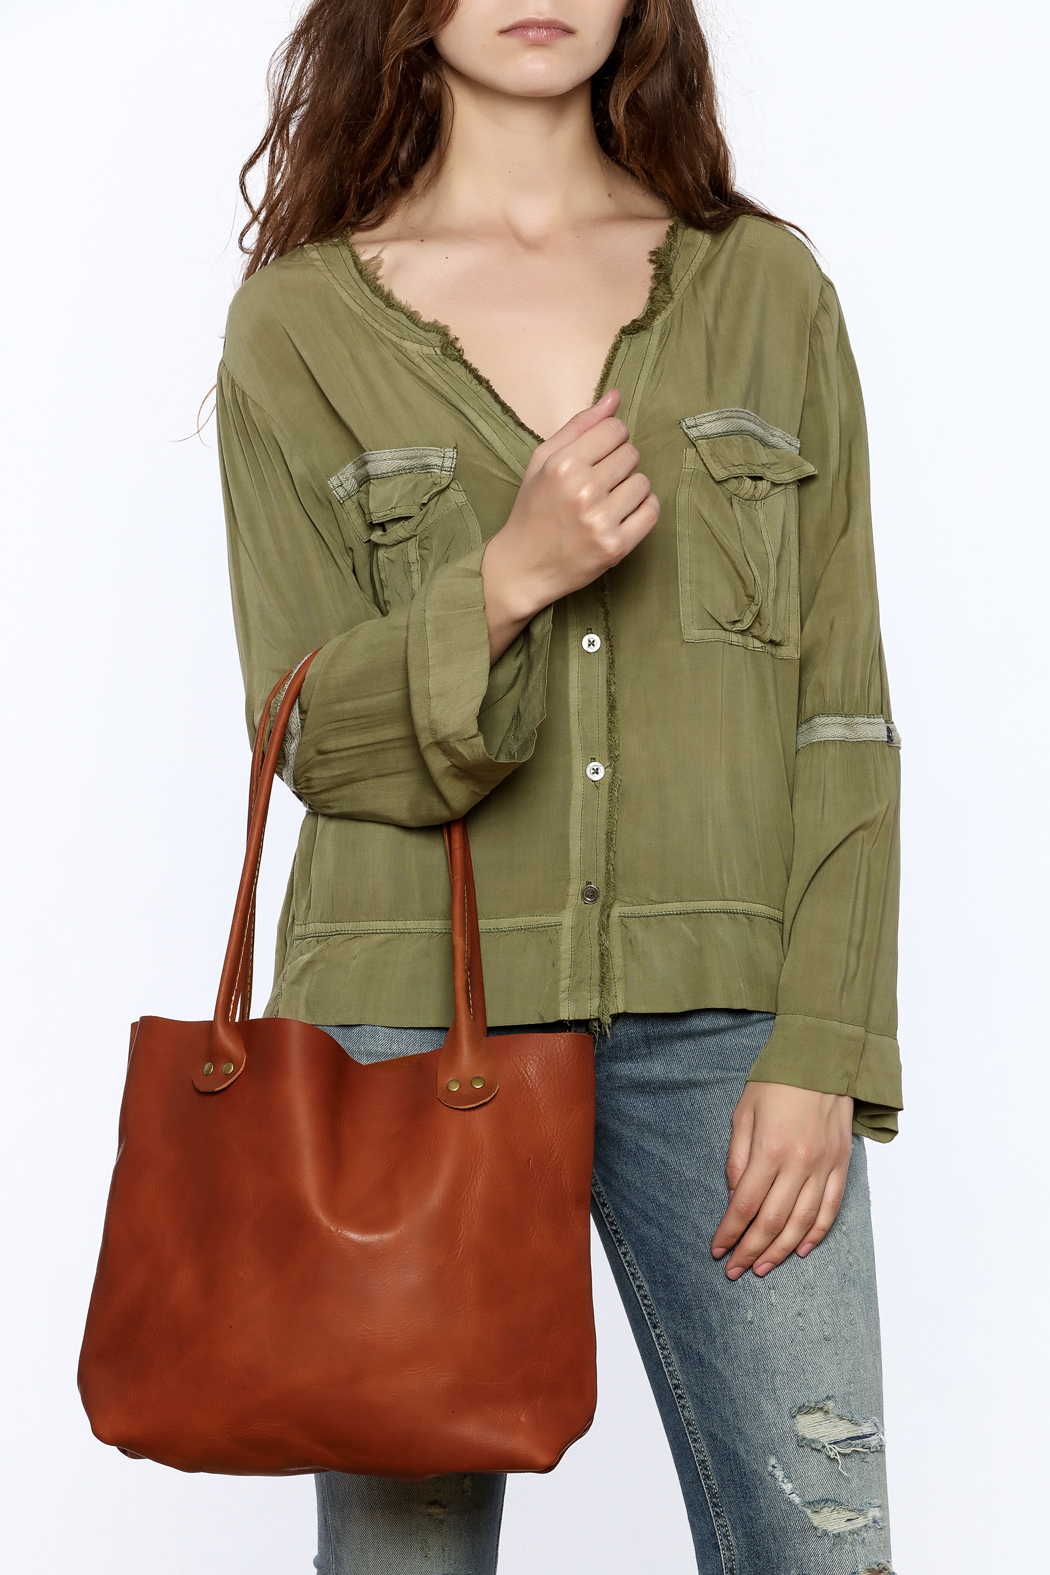 Hawks and Doves Tan Porter Tote - Back Cropped Image